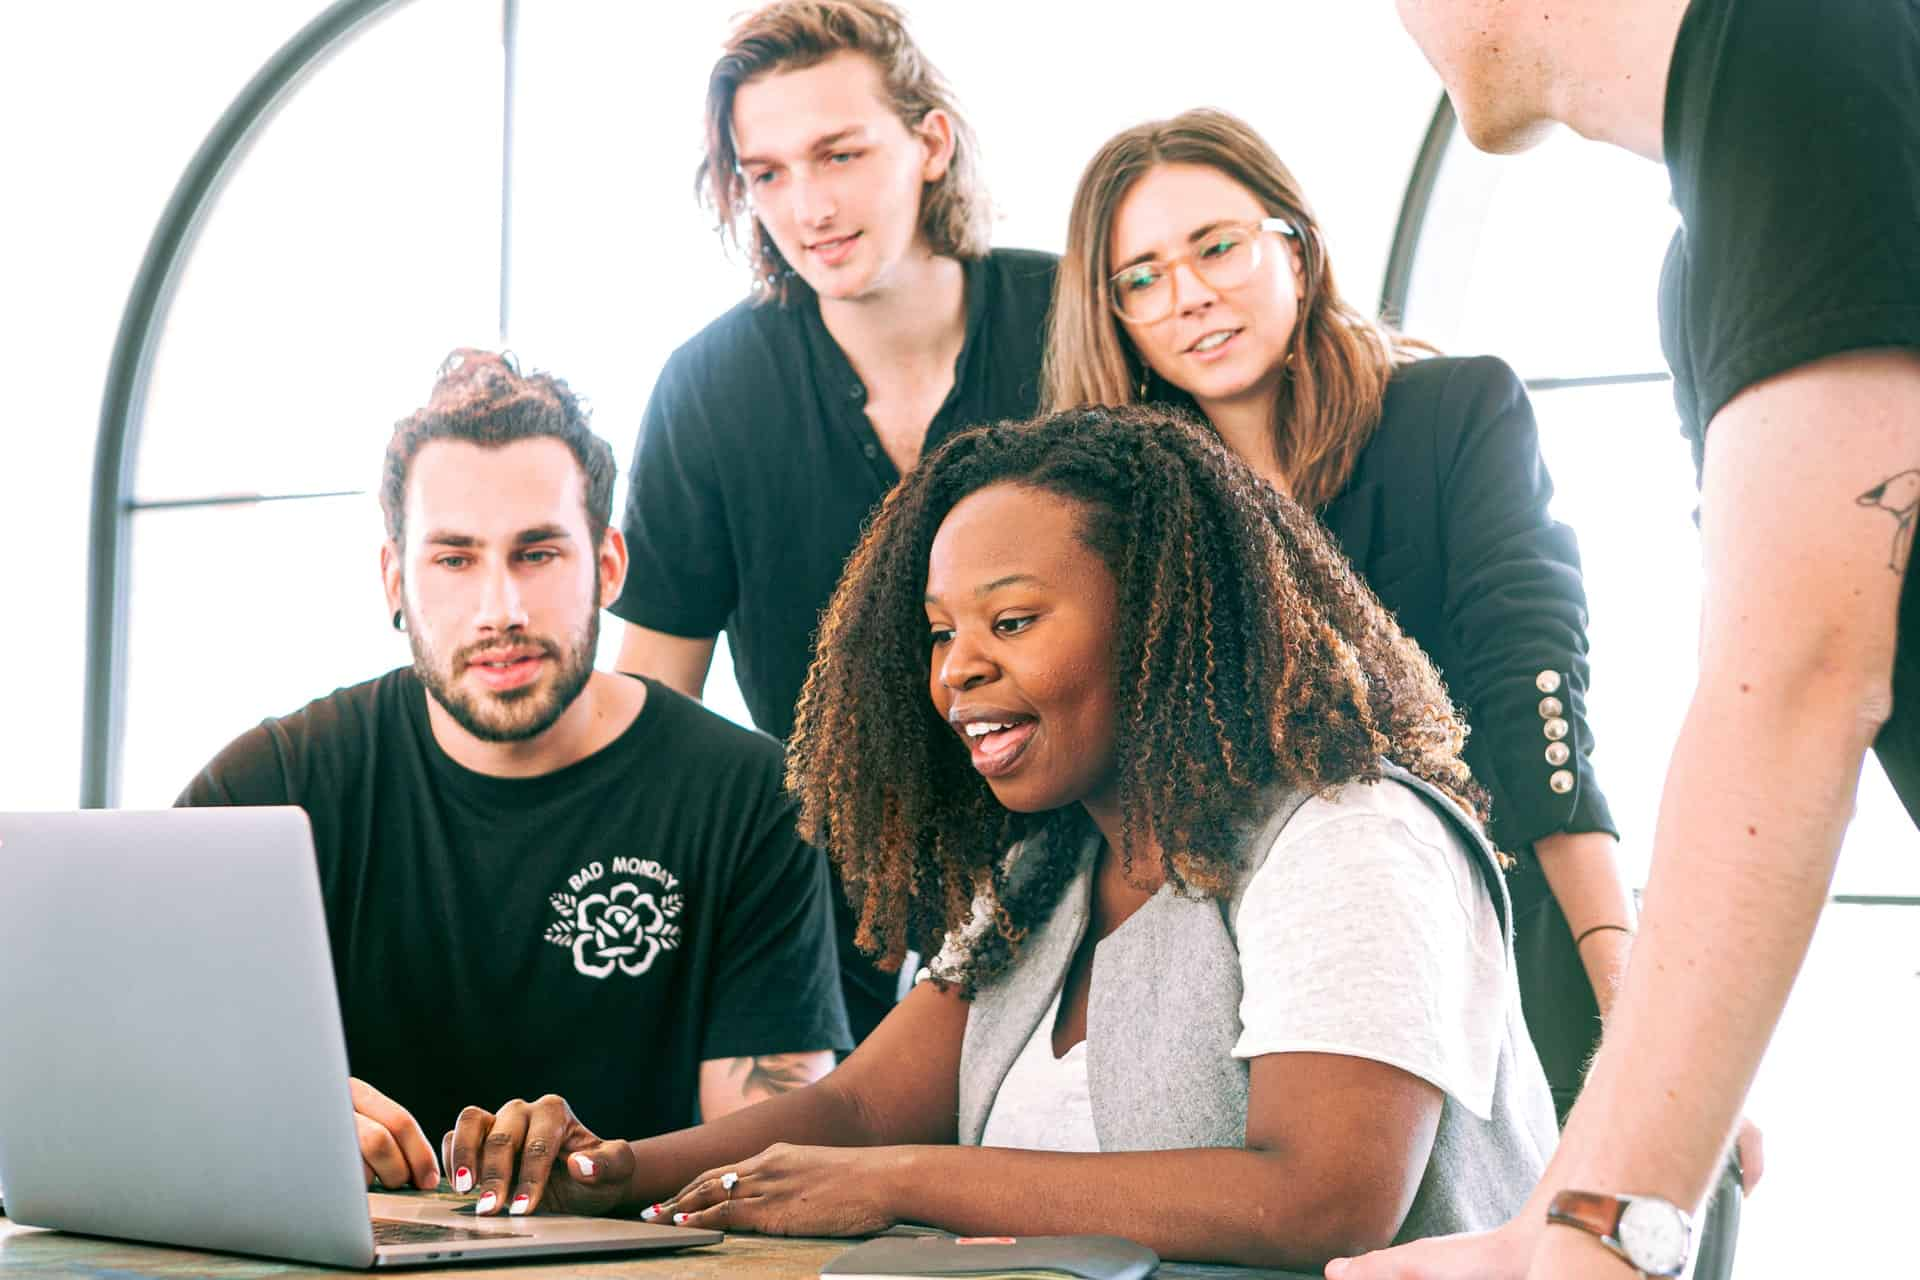 6 traits employers look for